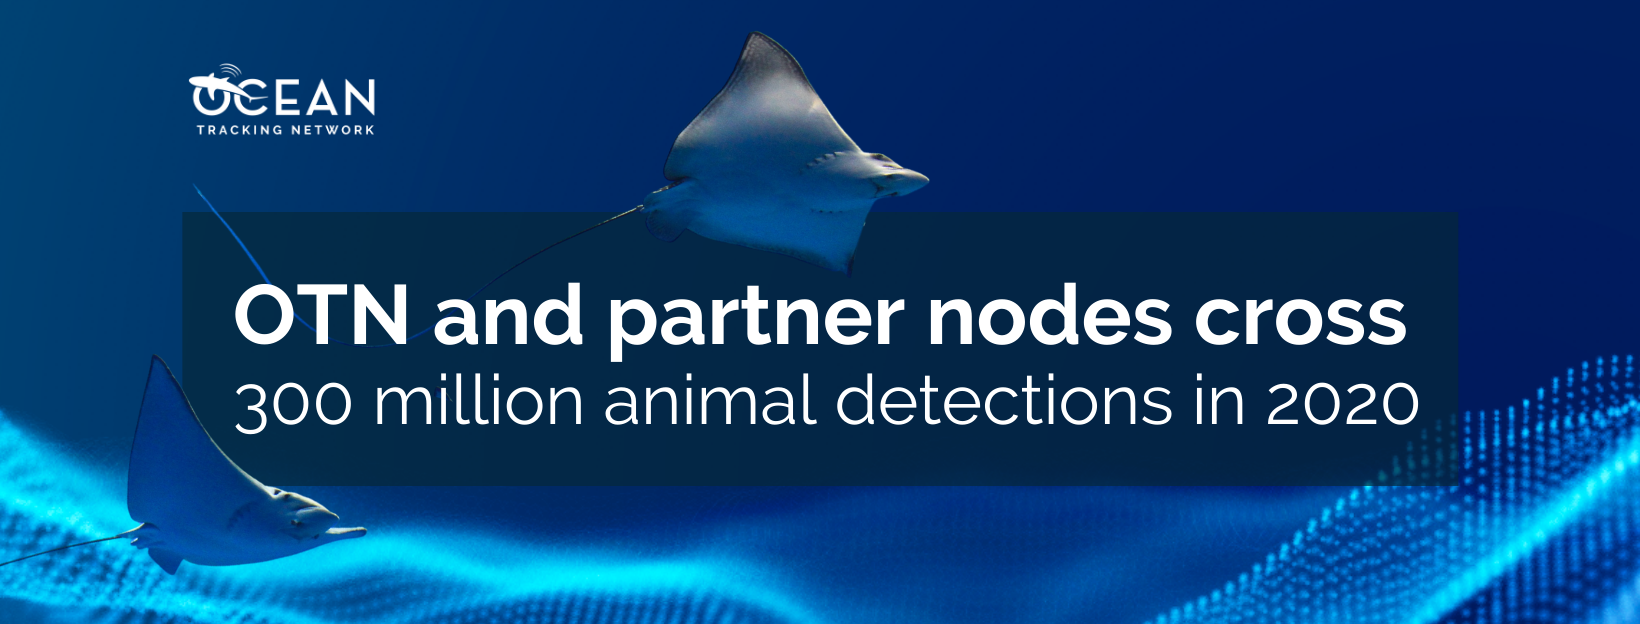 OTN and partner nodes cross 300 million animal detections in 2020